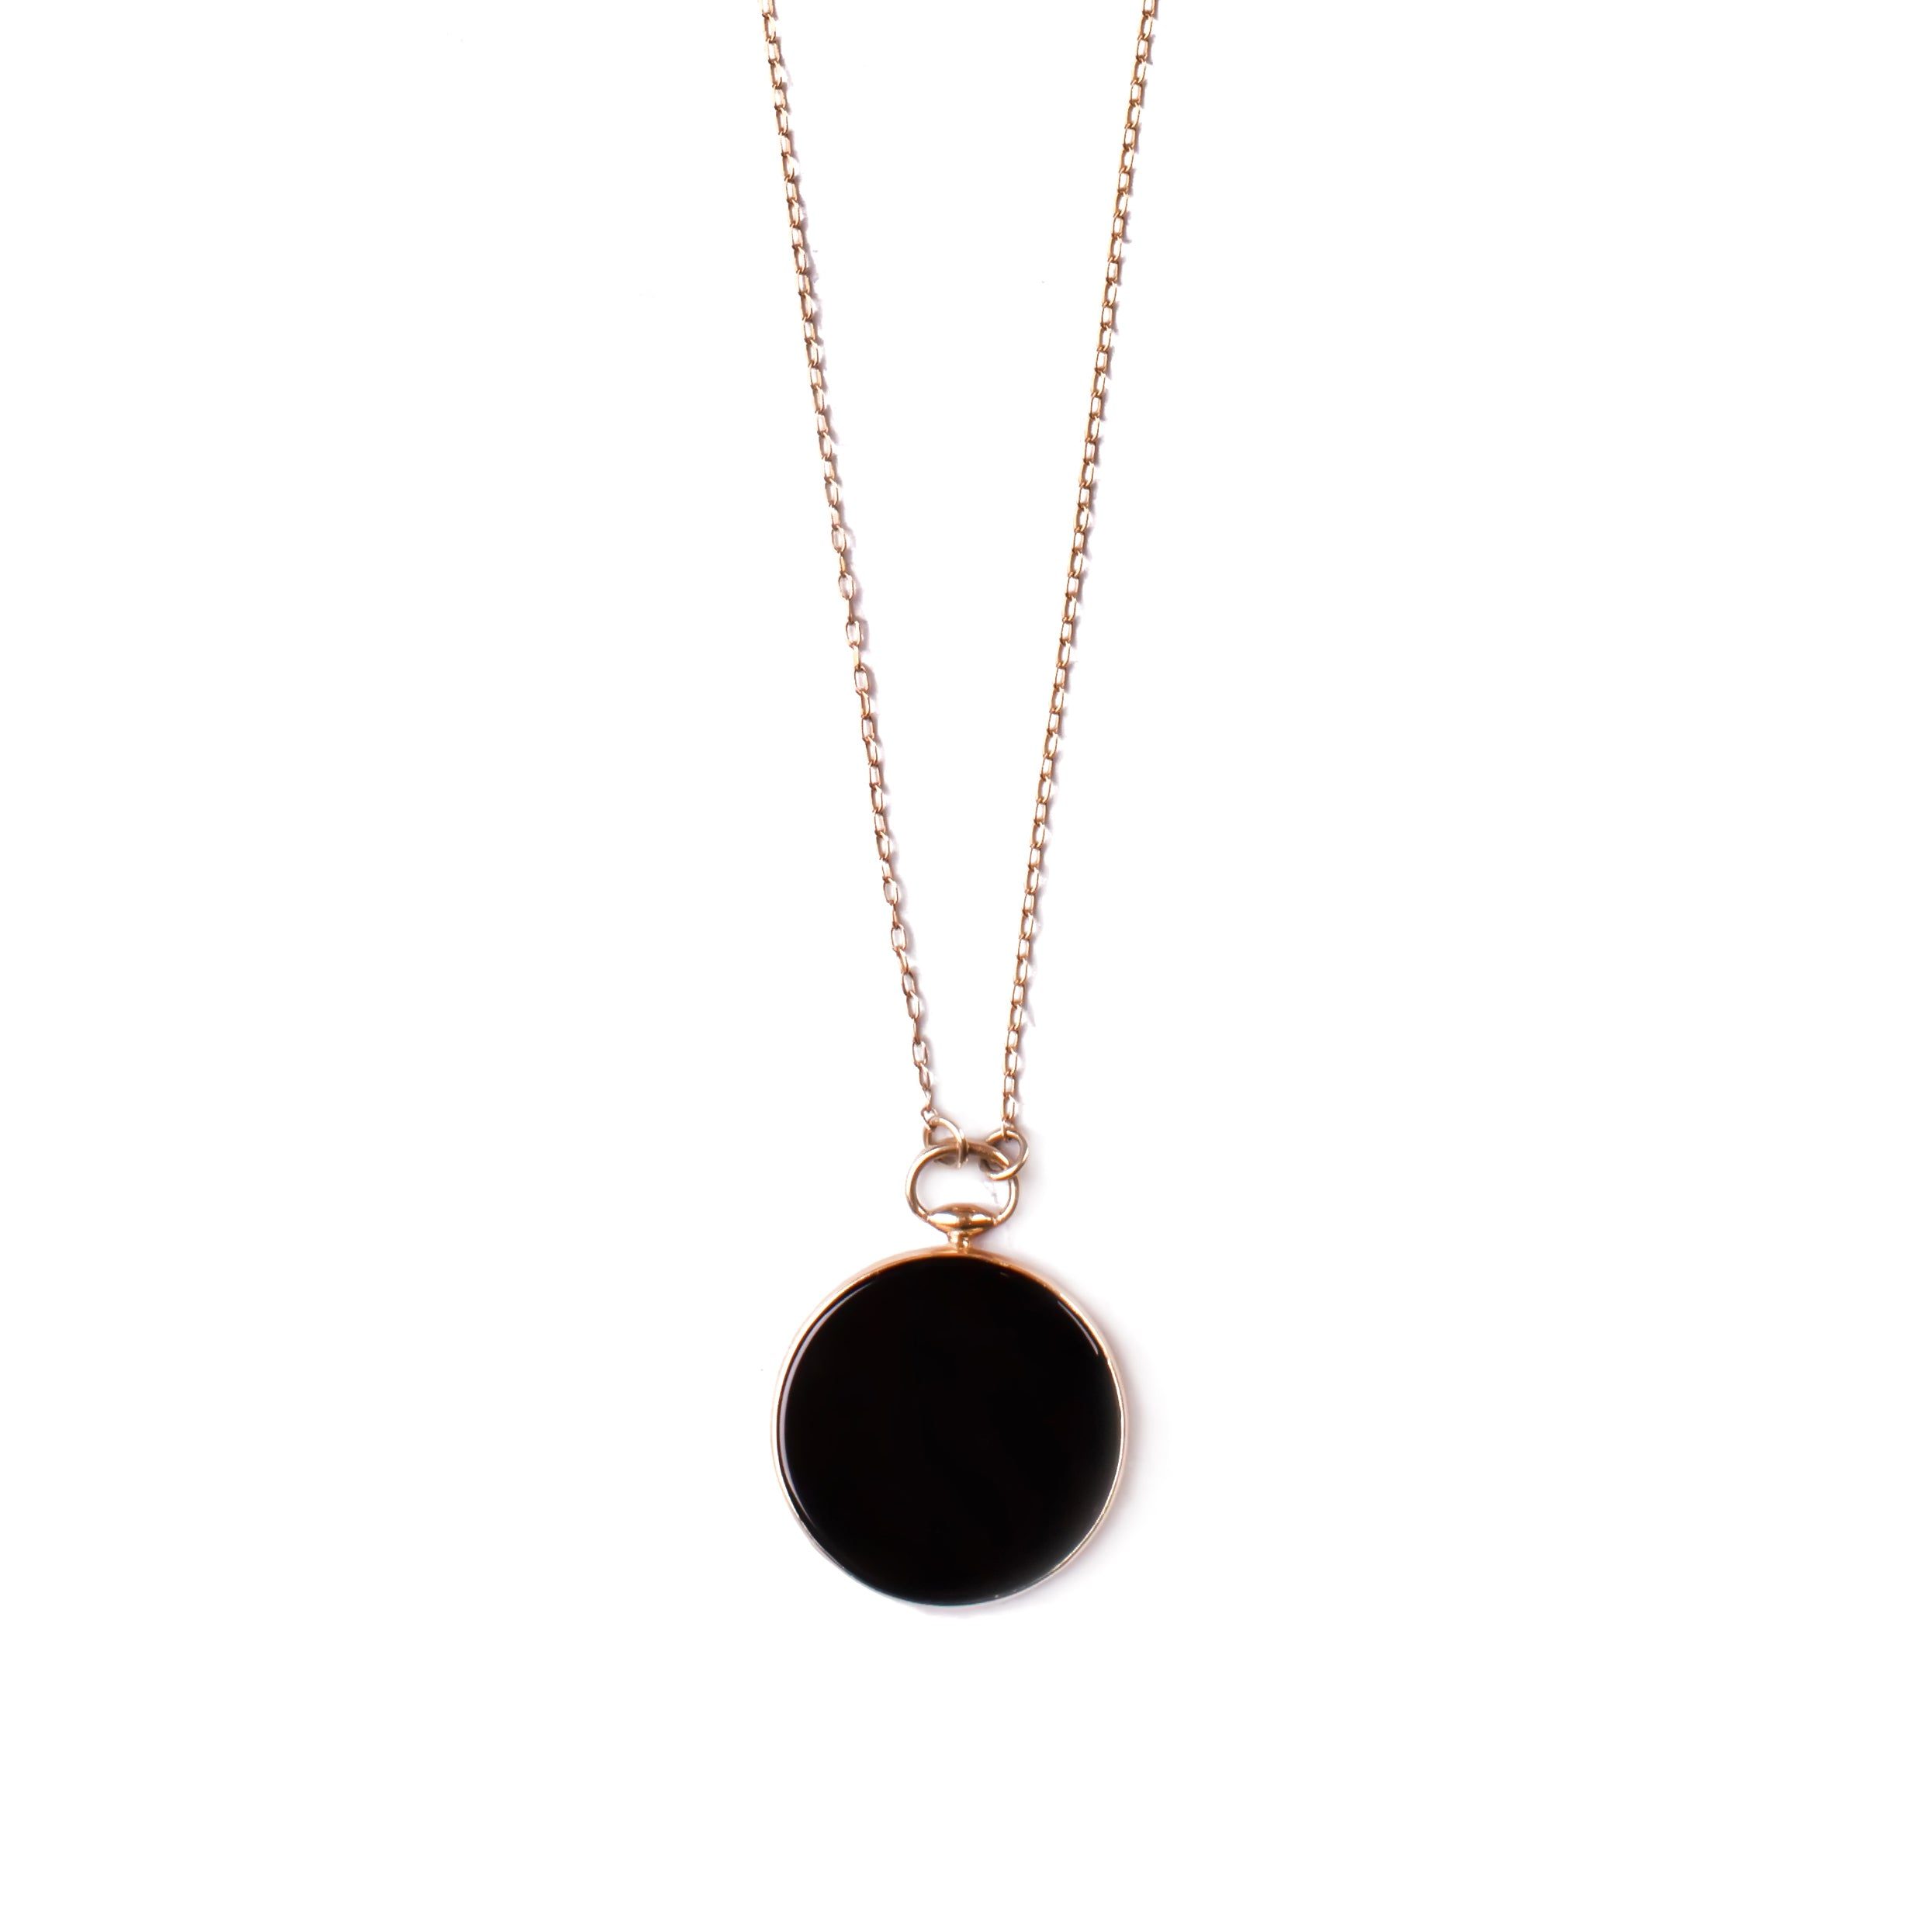 14k gold long necklace with big pendant onyx